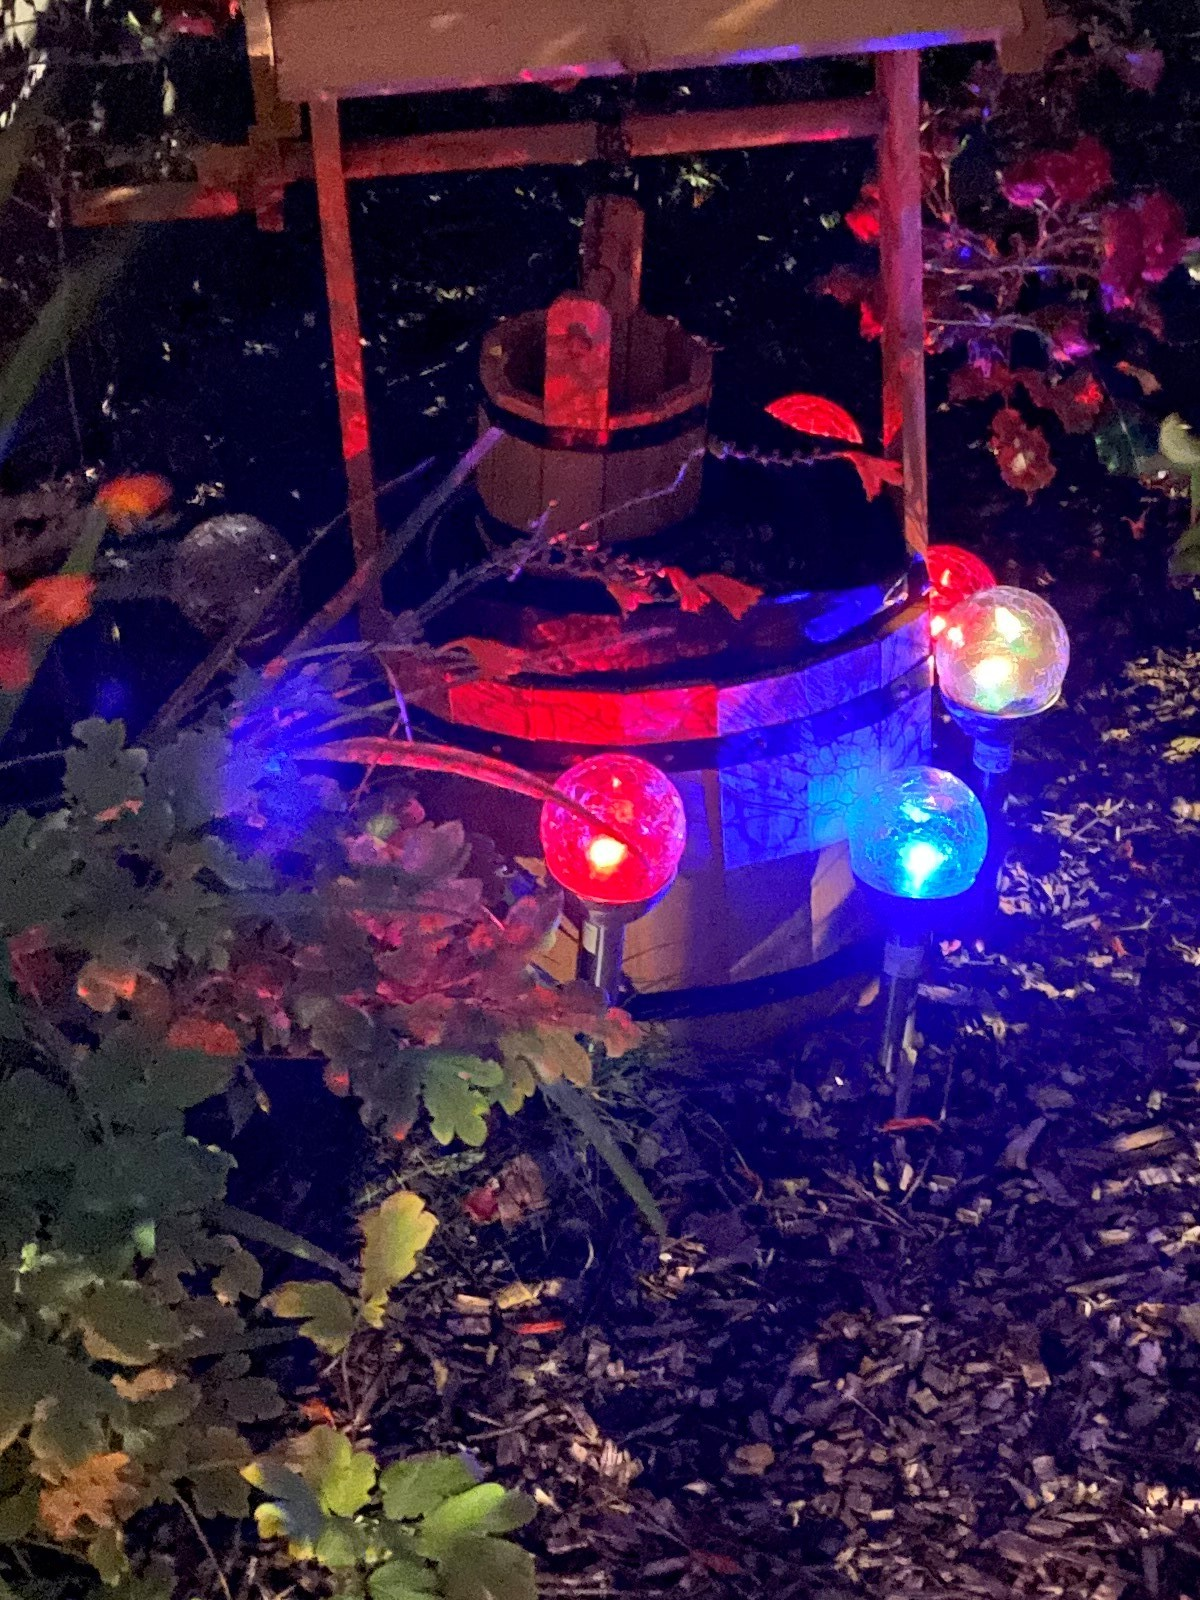 A photograph of a miniature, novelty wooden well sitting on a barked area, with blue and red lights and assorted plants around it.